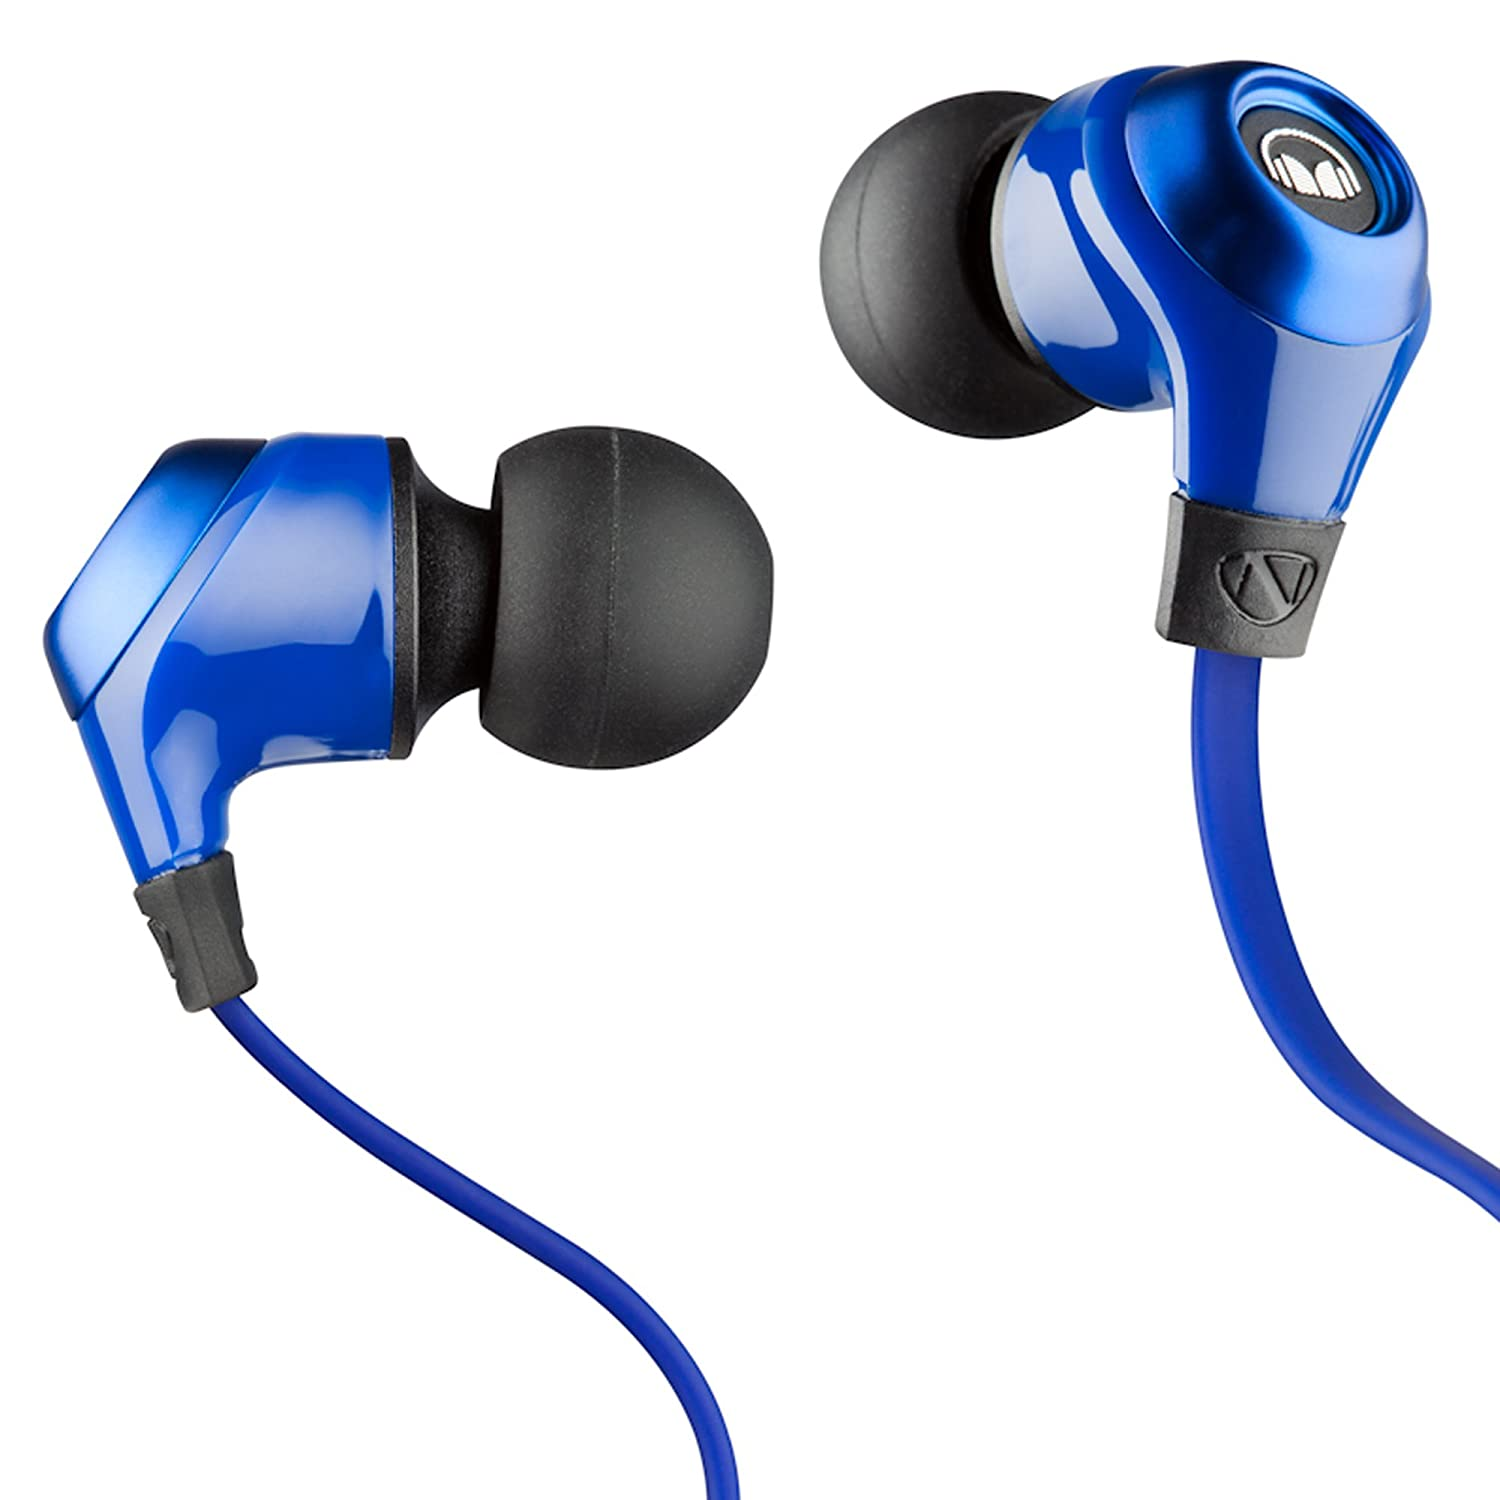 Monster NCredible NErgy In-Ear Headphones (Cobalt Blue) $45.42